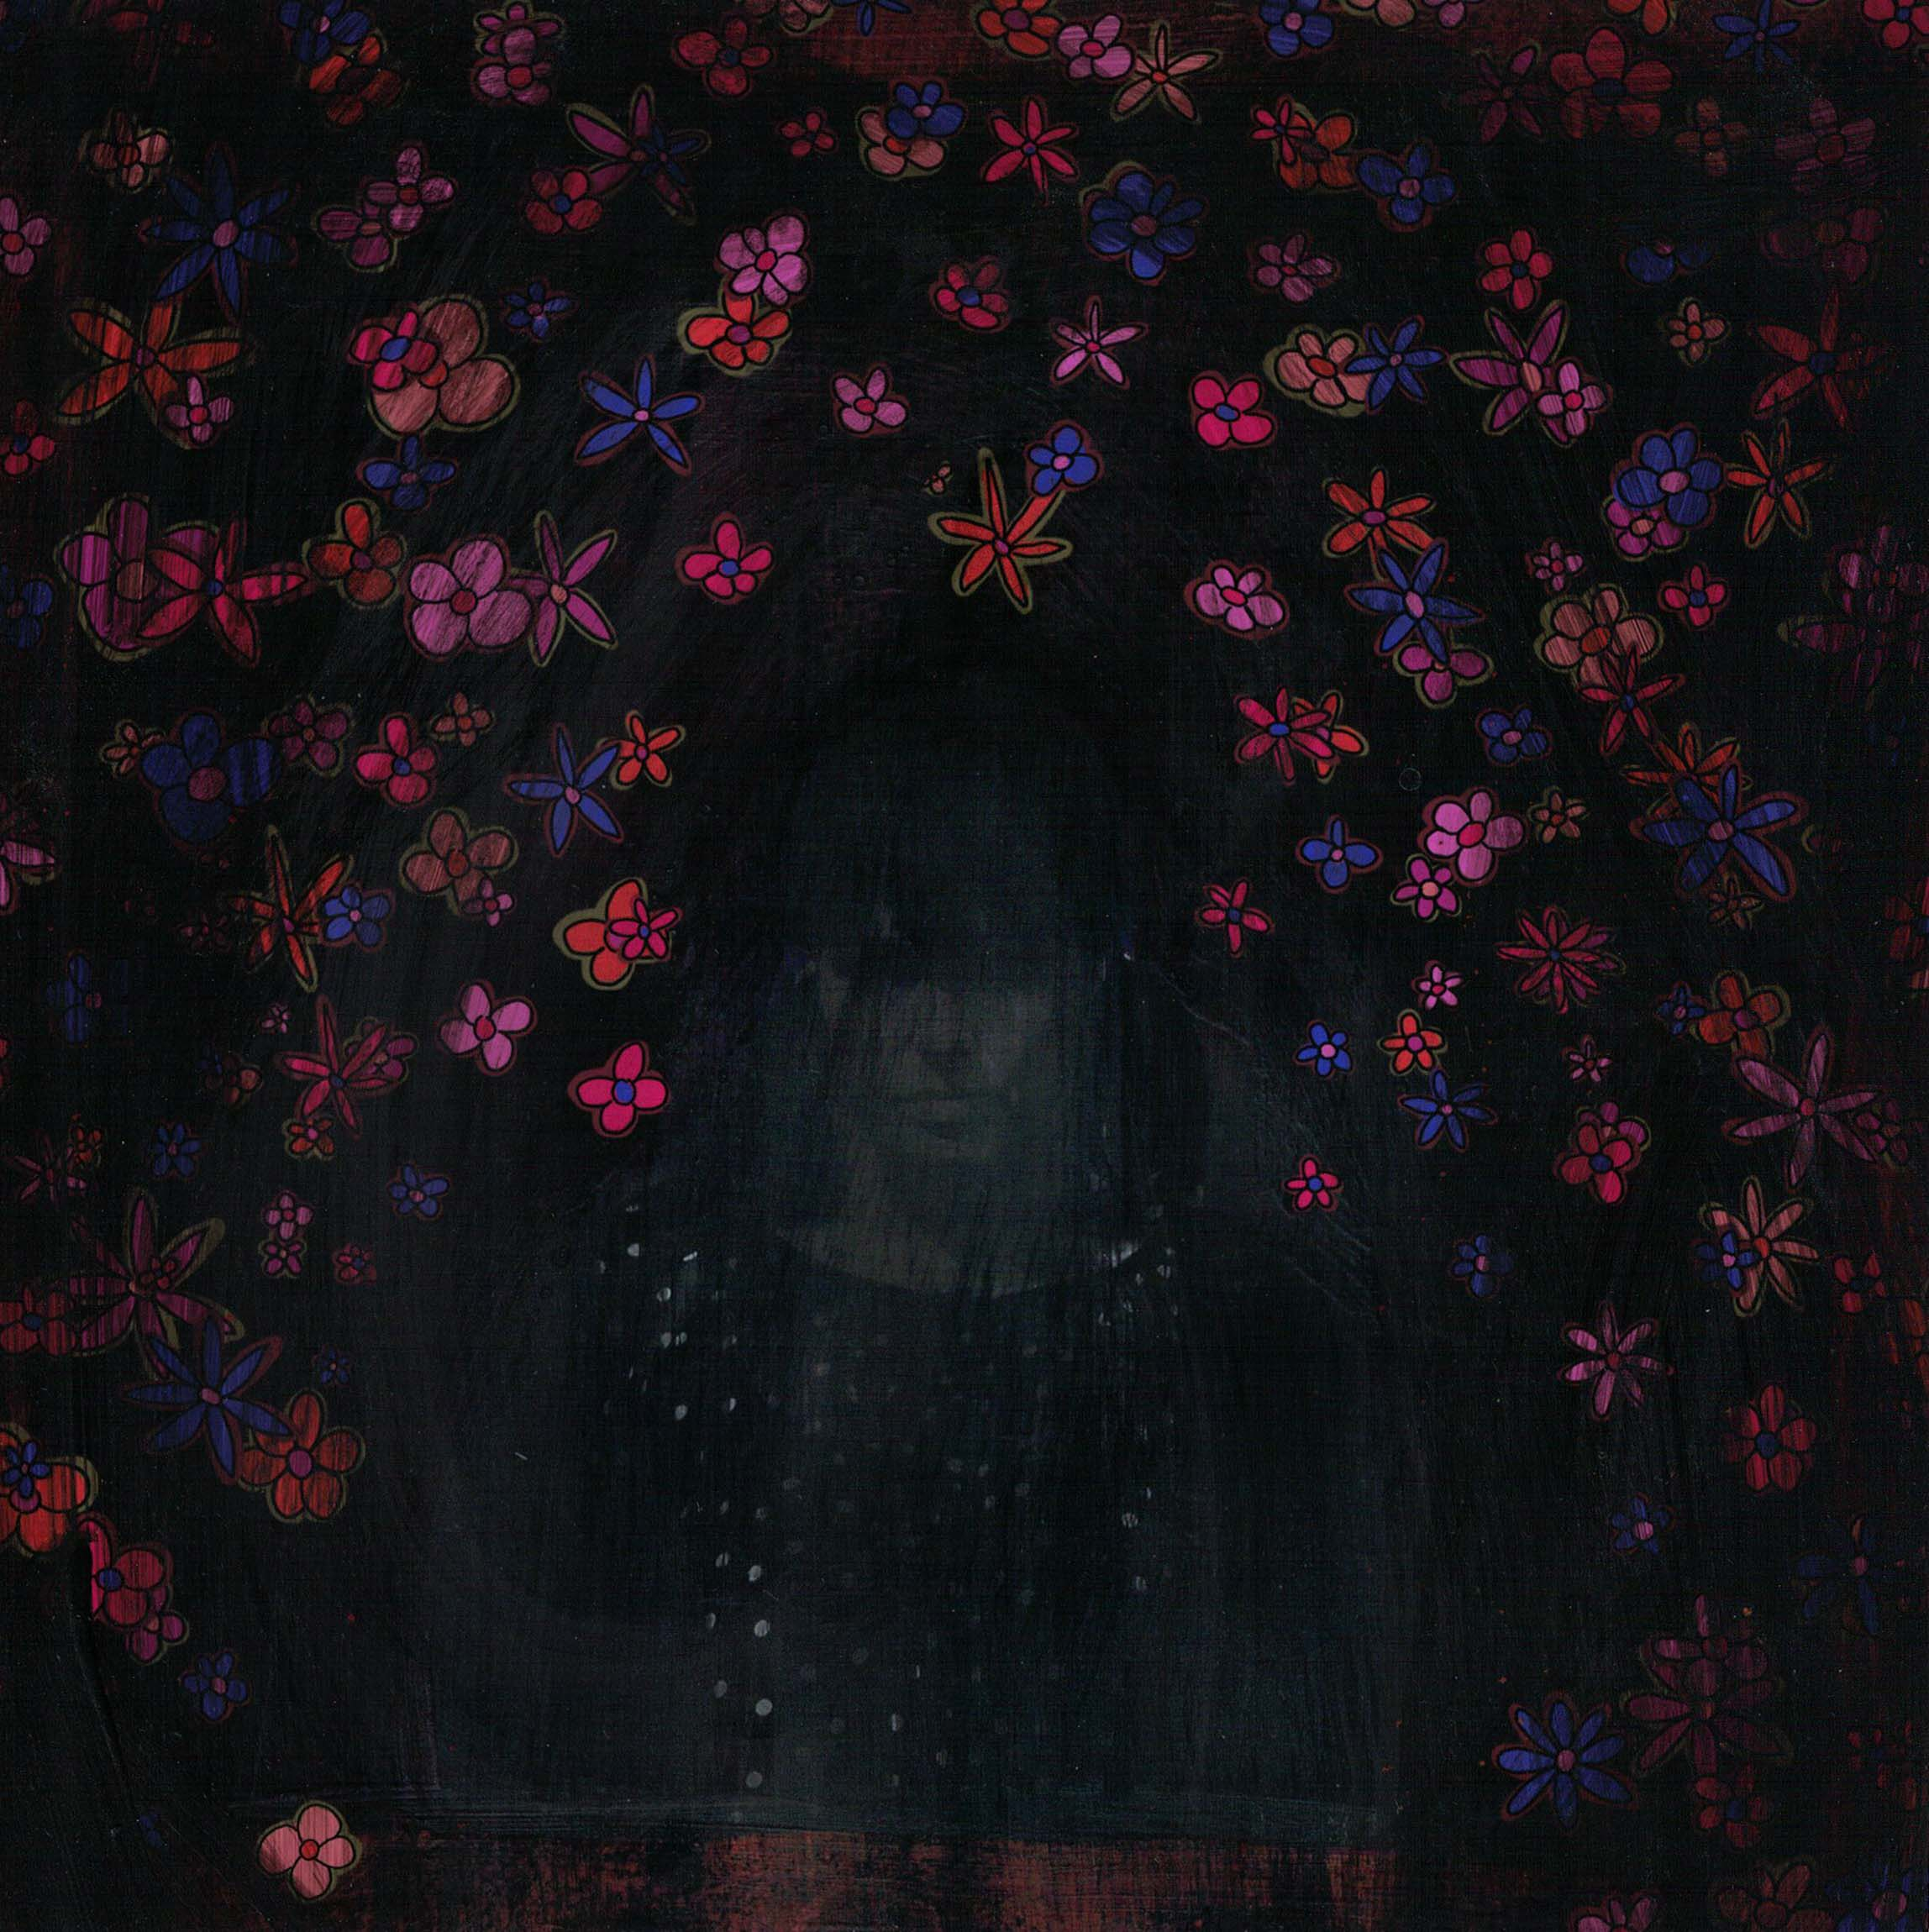 dark disappointment with flowers